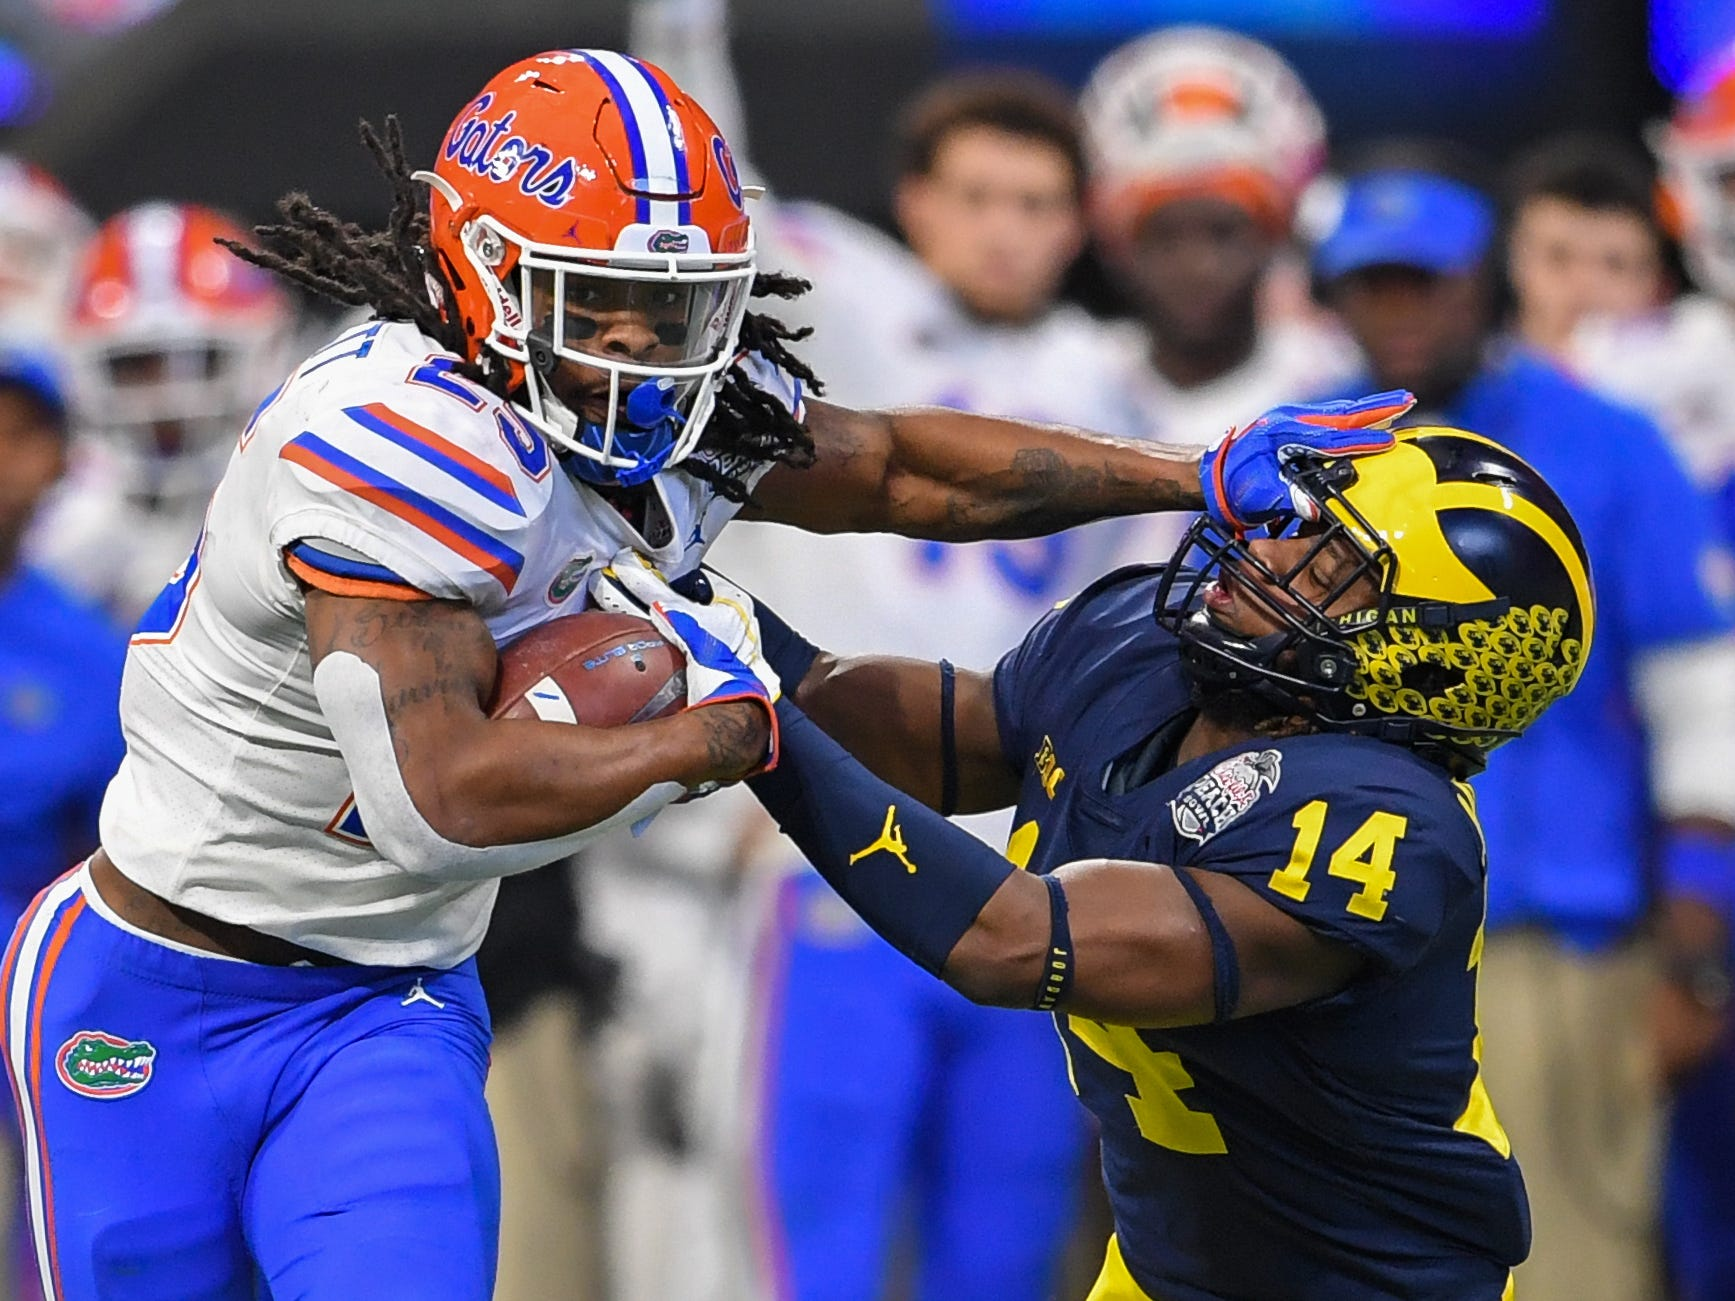 Florida running back Jordan Scarlett runs against Michigan defensive back Josh Metellus during the Peach Bowl on Saturday, Dec. 29, 2018, in Atlanta.